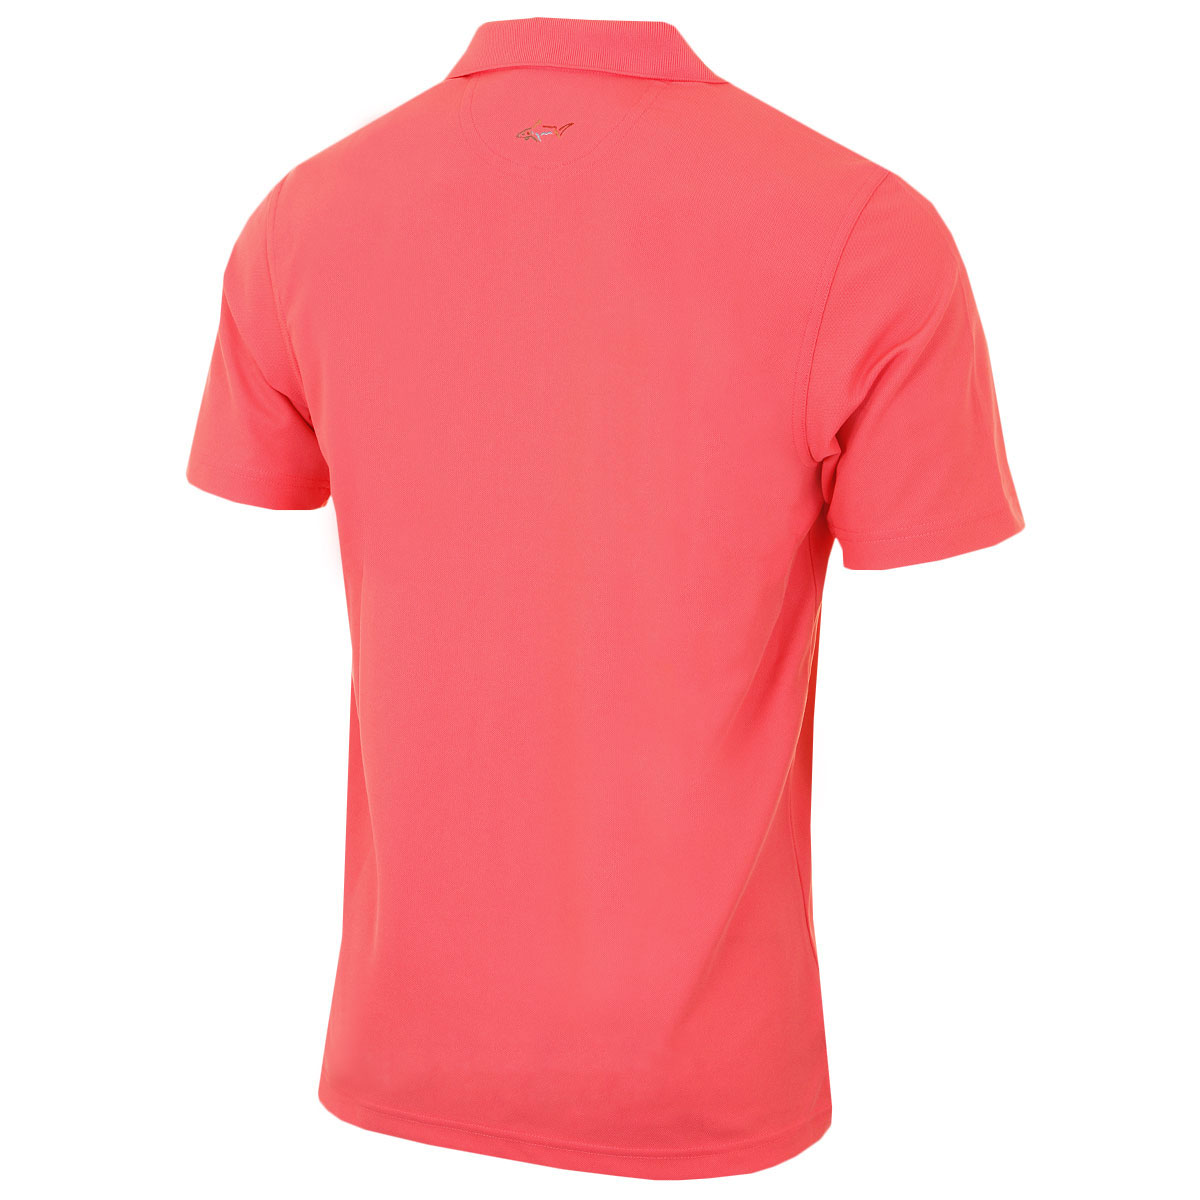 Greg-Norman-Mens-KX04-Performance-Micro-Pique-Golf-Polo-Shirt-28-OFF-RRP thumbnail 10